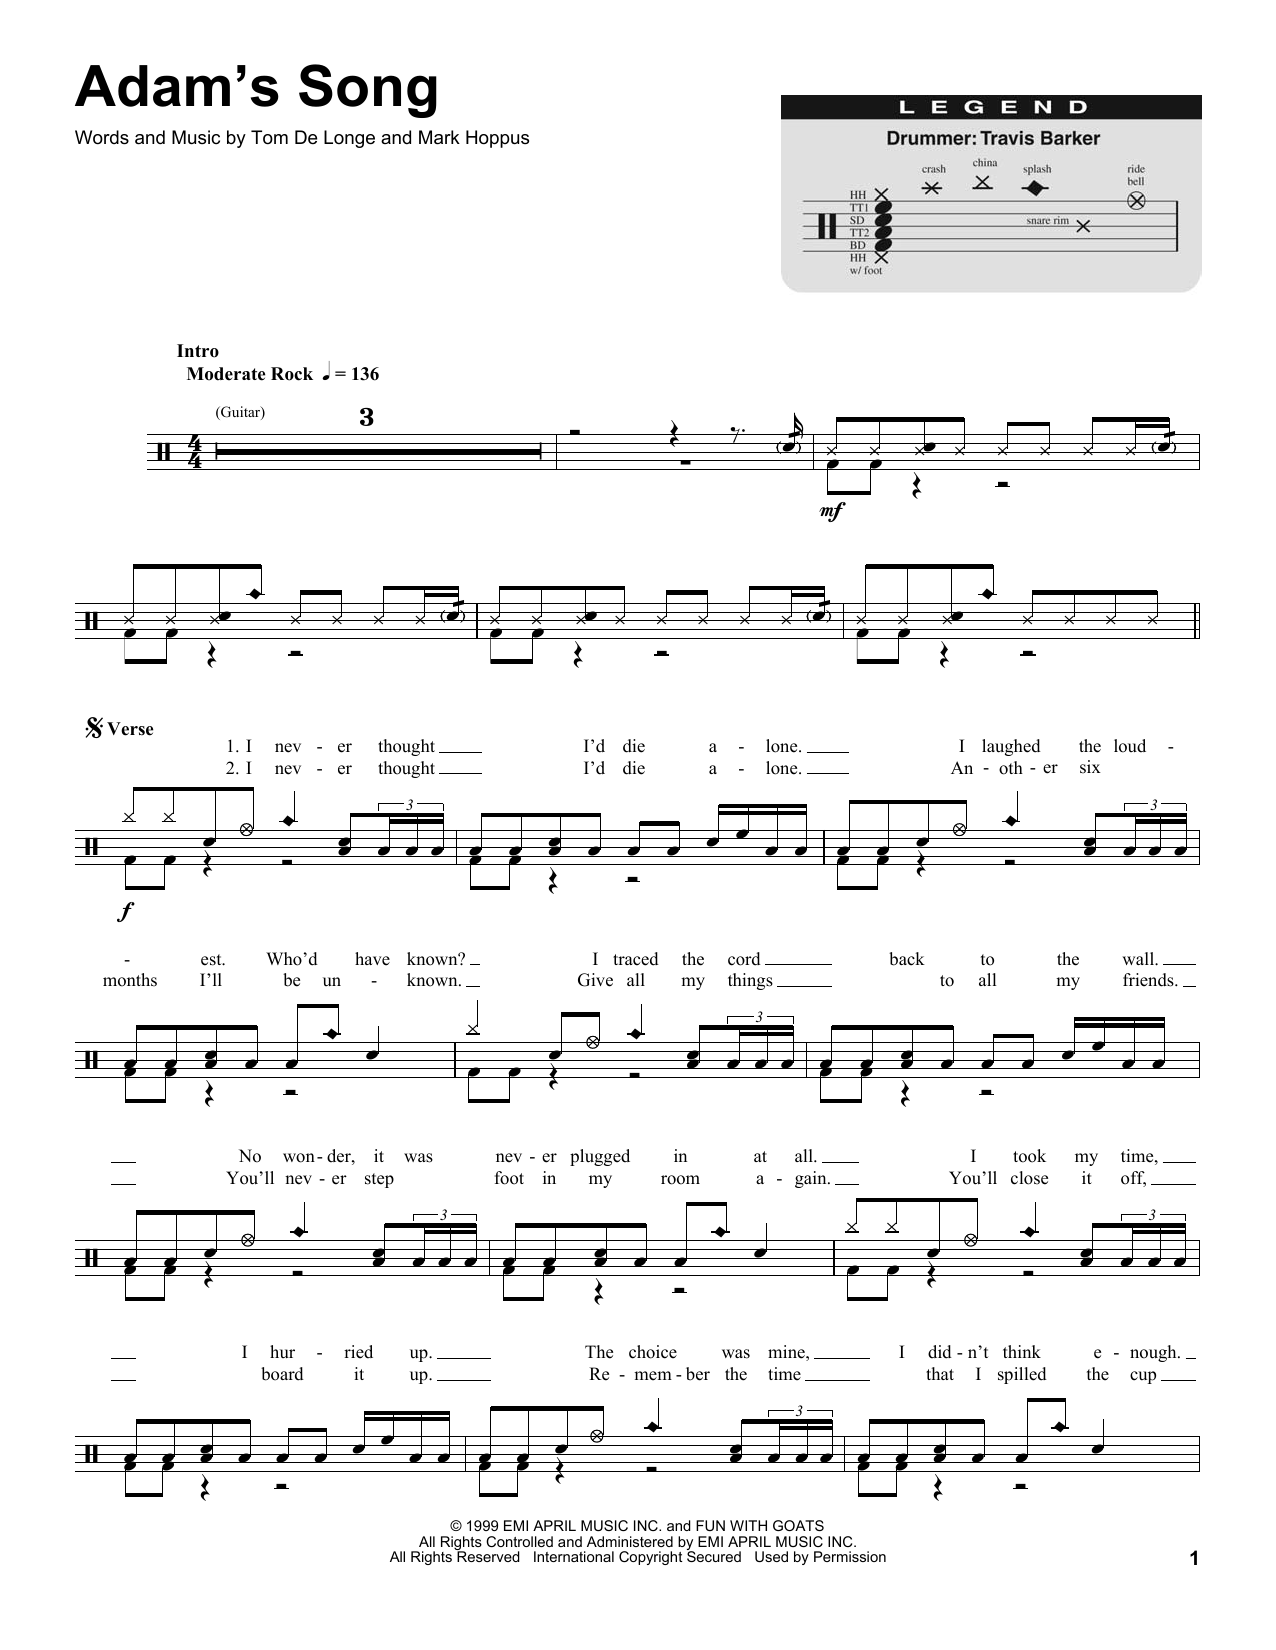 Blink 182 Adams Song Guitar Chords Picture Gallery